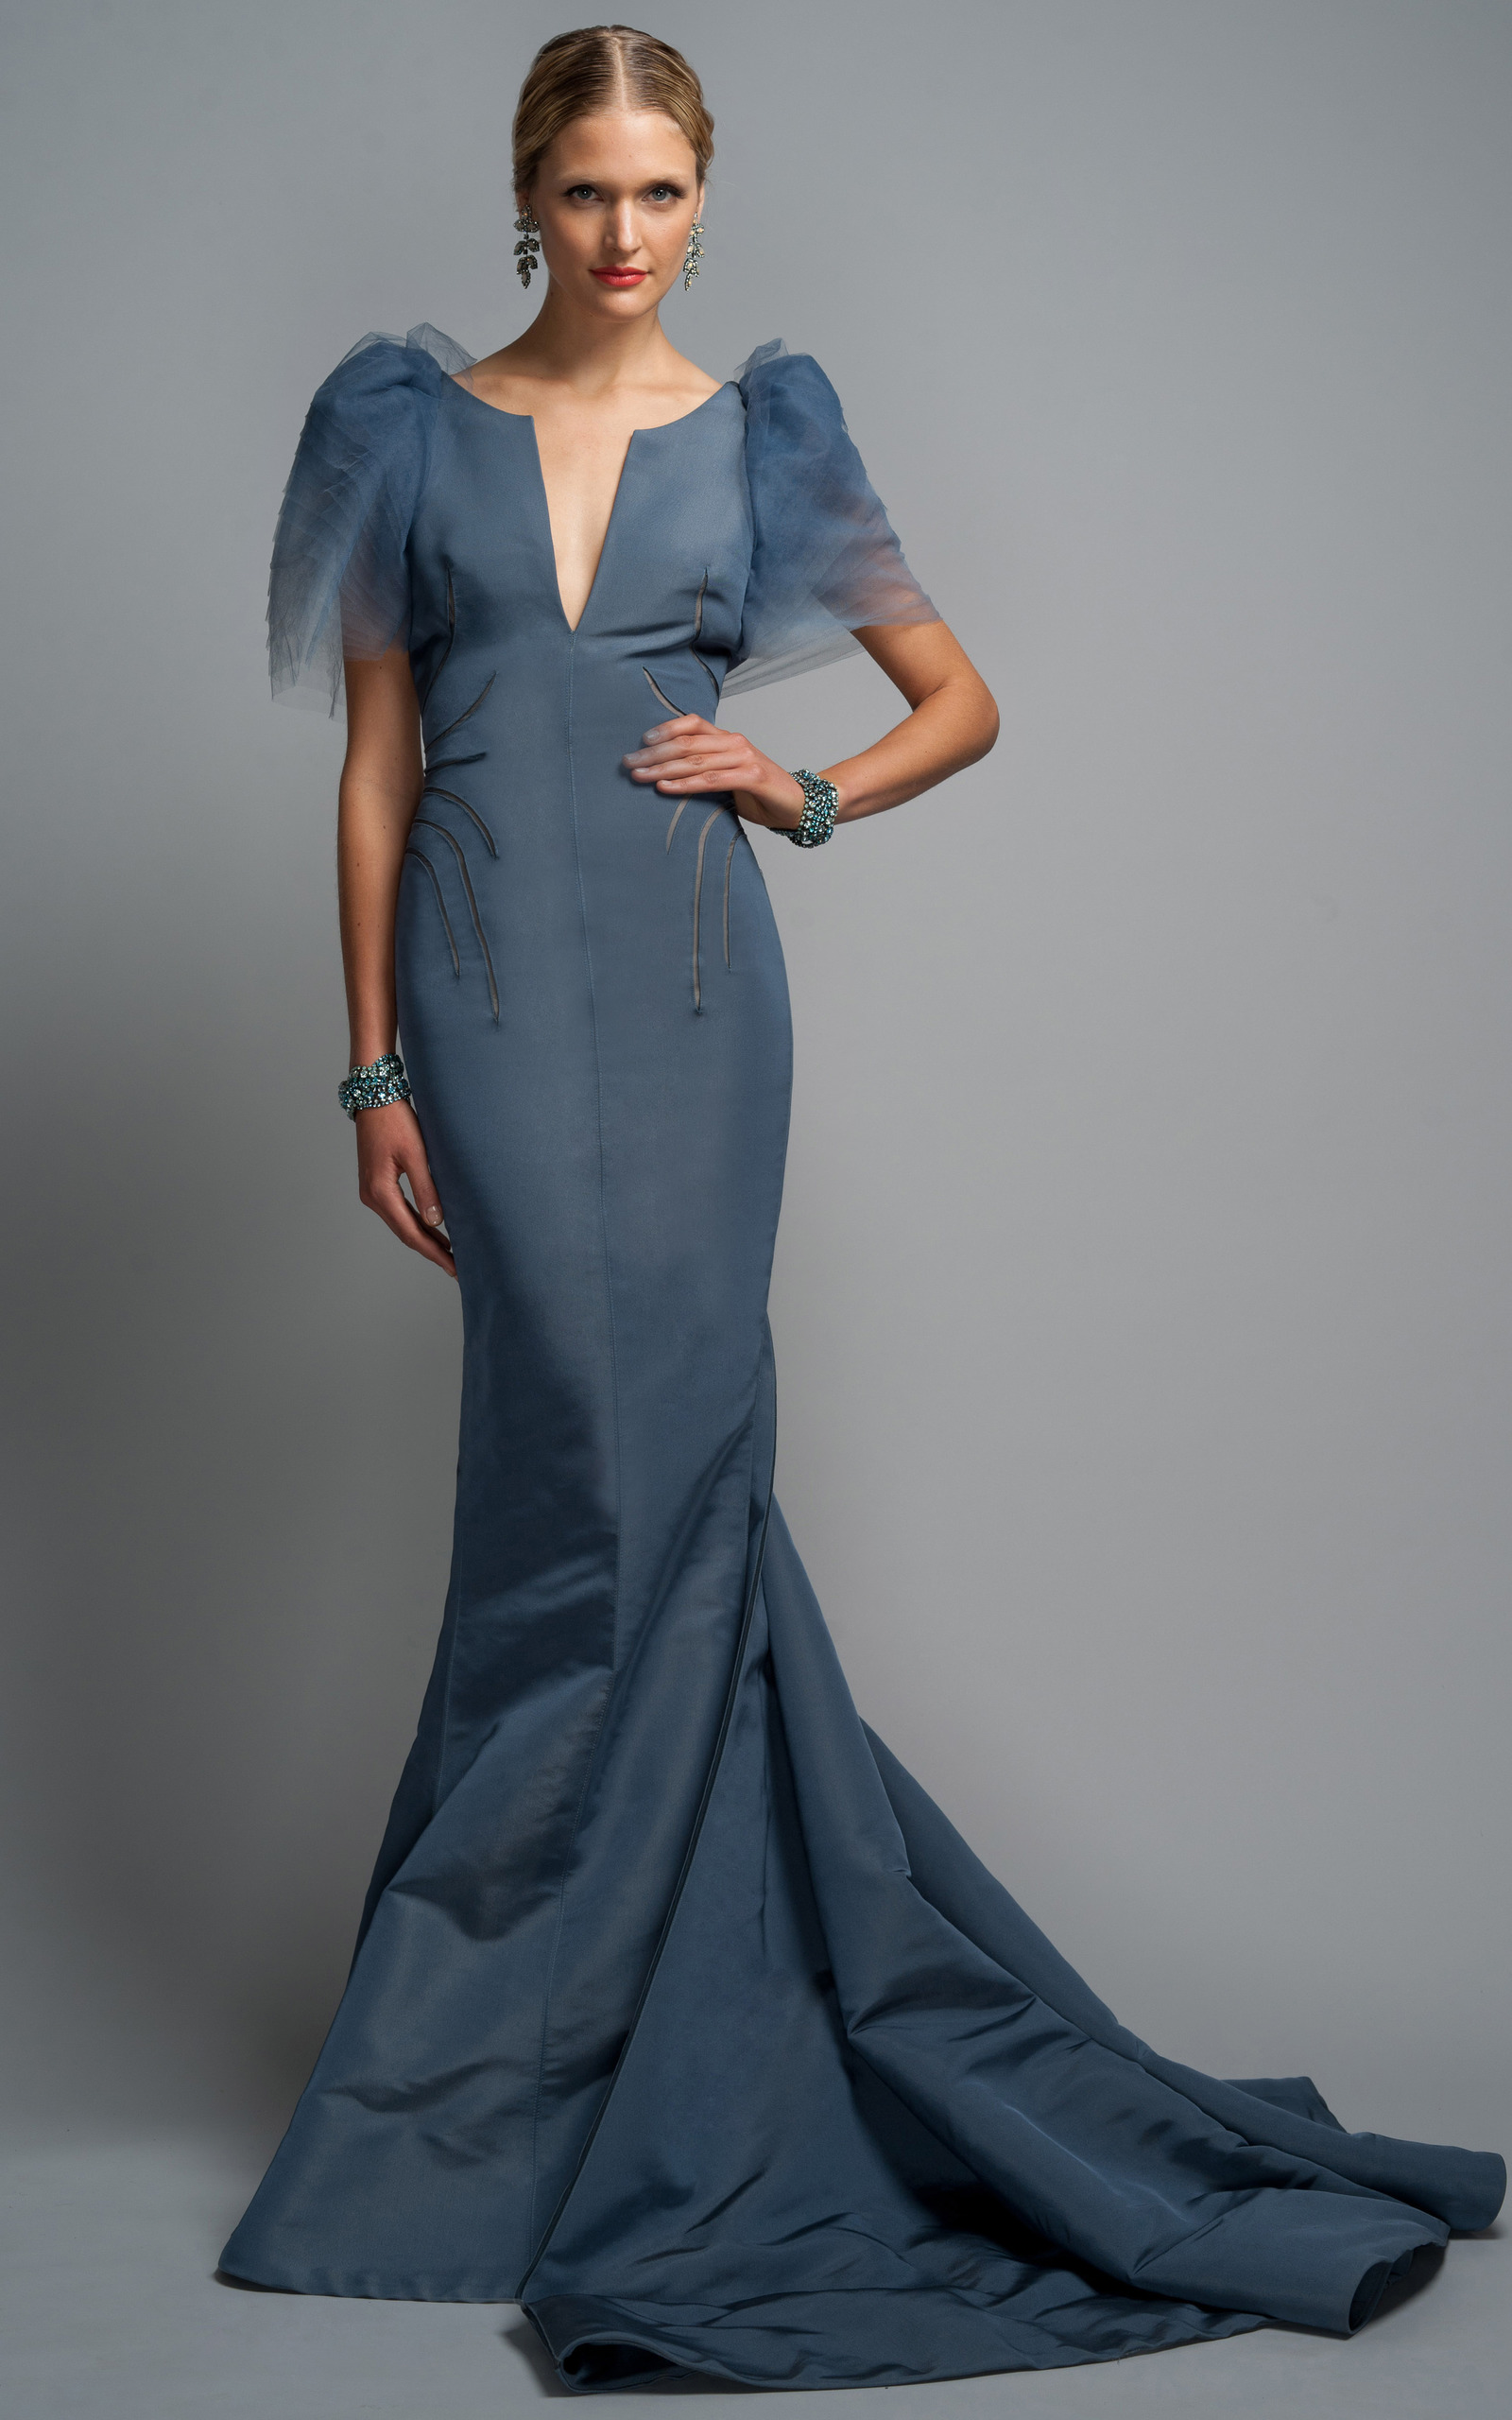 Steel Blue Evening Gown By Zac Posen Moda Operandi